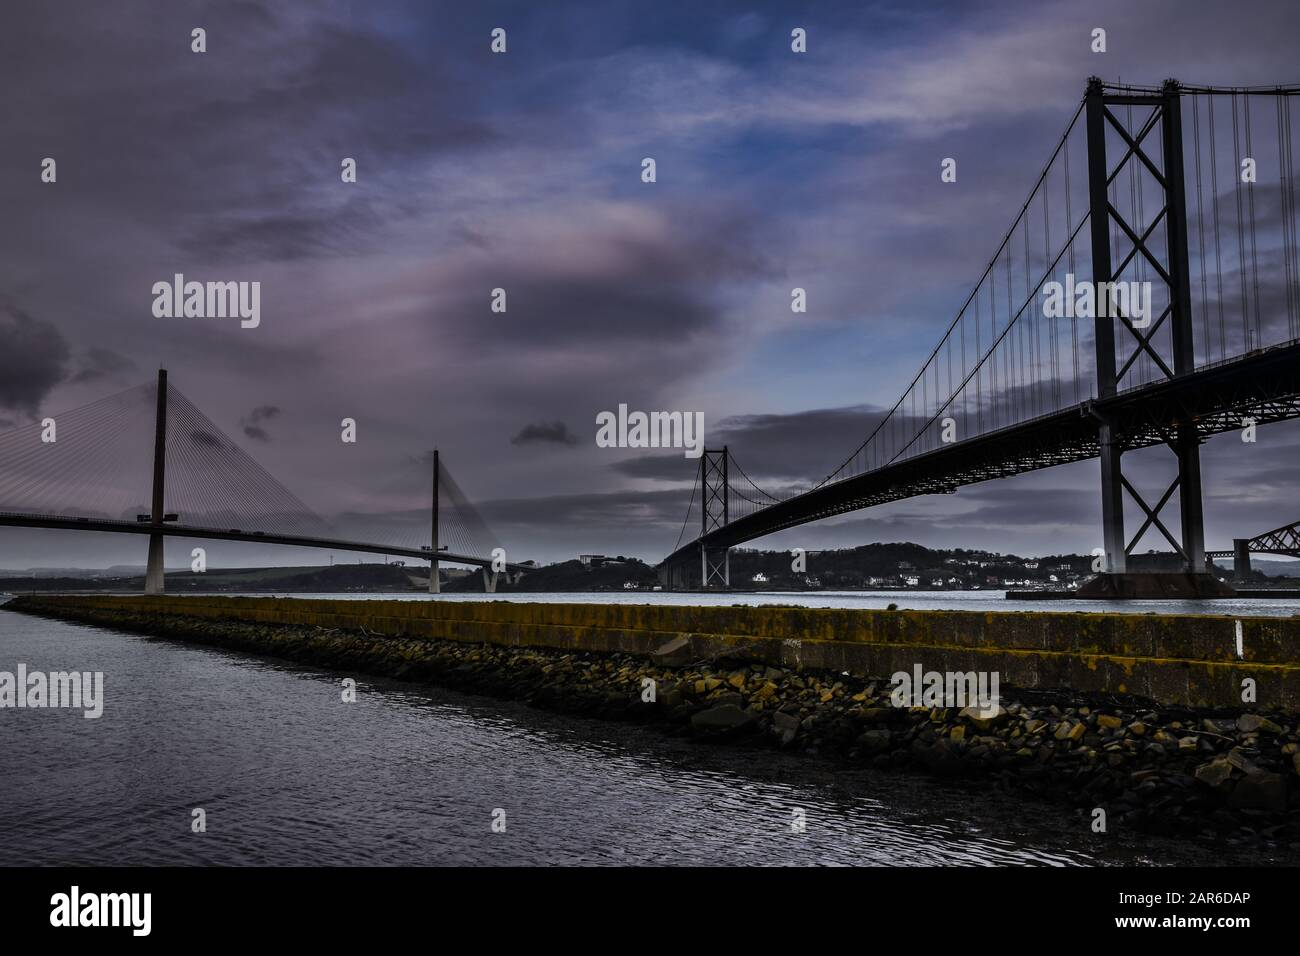 Forth Road Bridge and Queensferry Crossing bridges over the Forth Estuary in Scotland with dramatic skies, pier in foreground Stock Photo